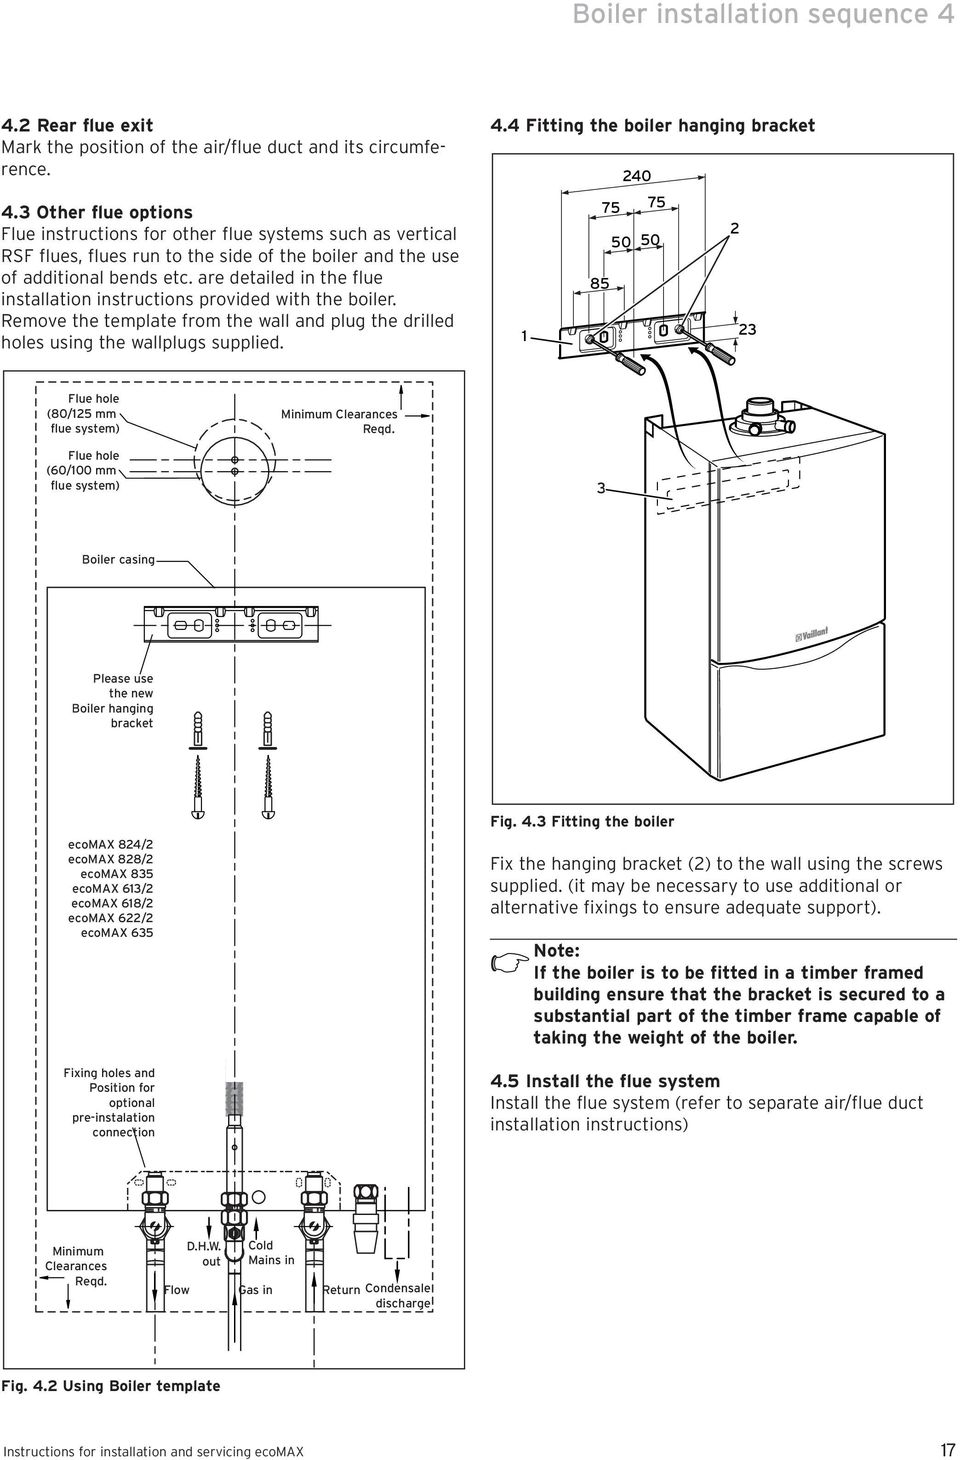 Instructions for installation and servicing ecomax - PDF